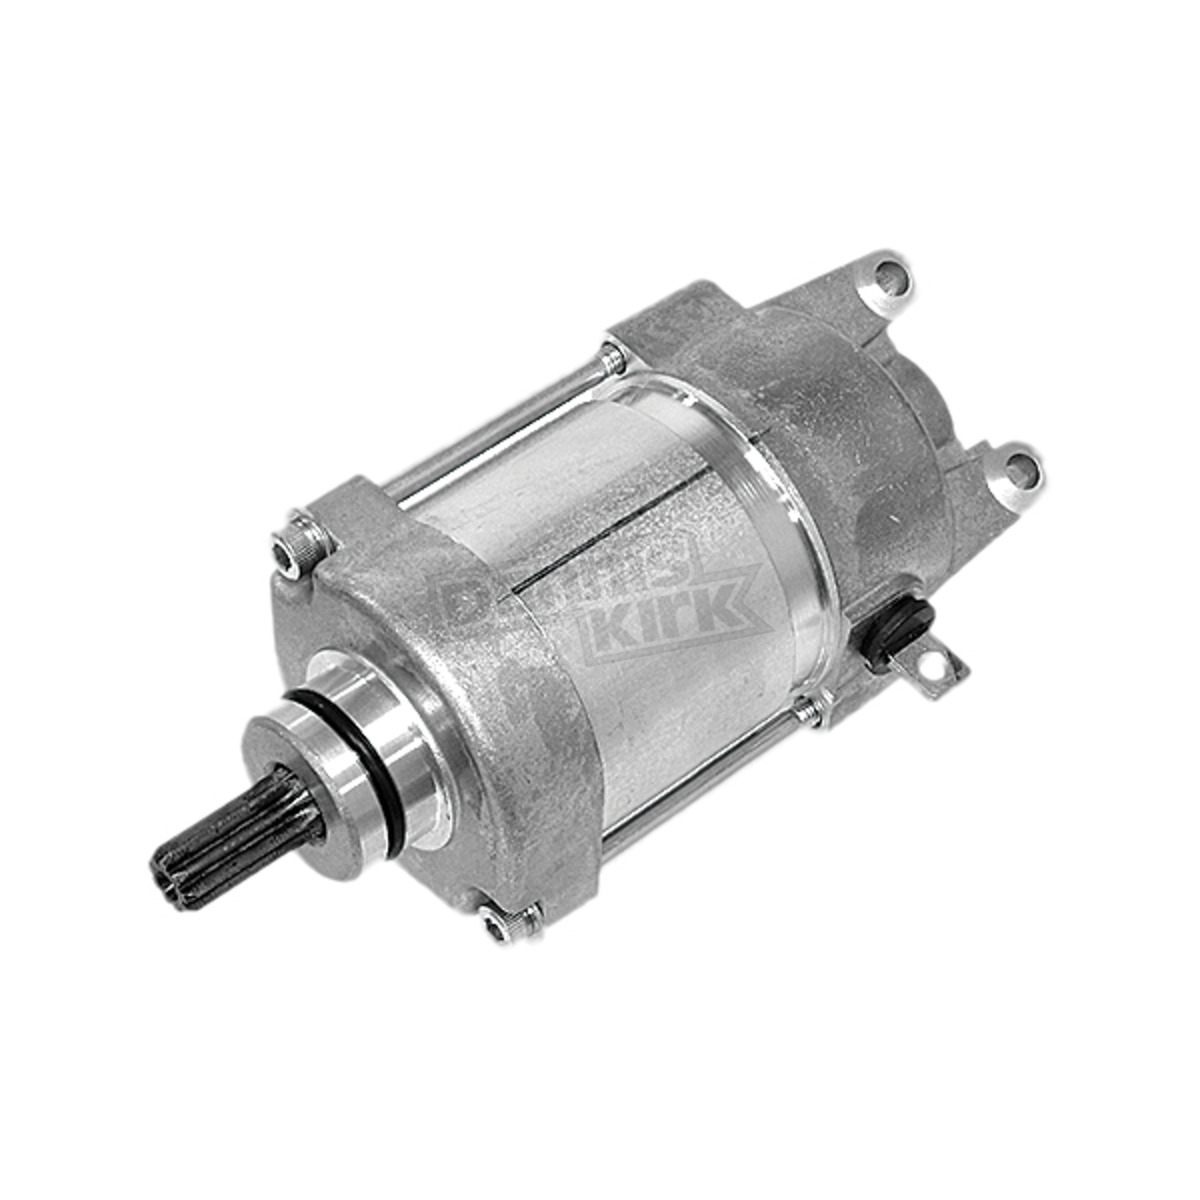 Sports parts inc starter motor sm 01319 snowmobile for Nhd inc motor starter